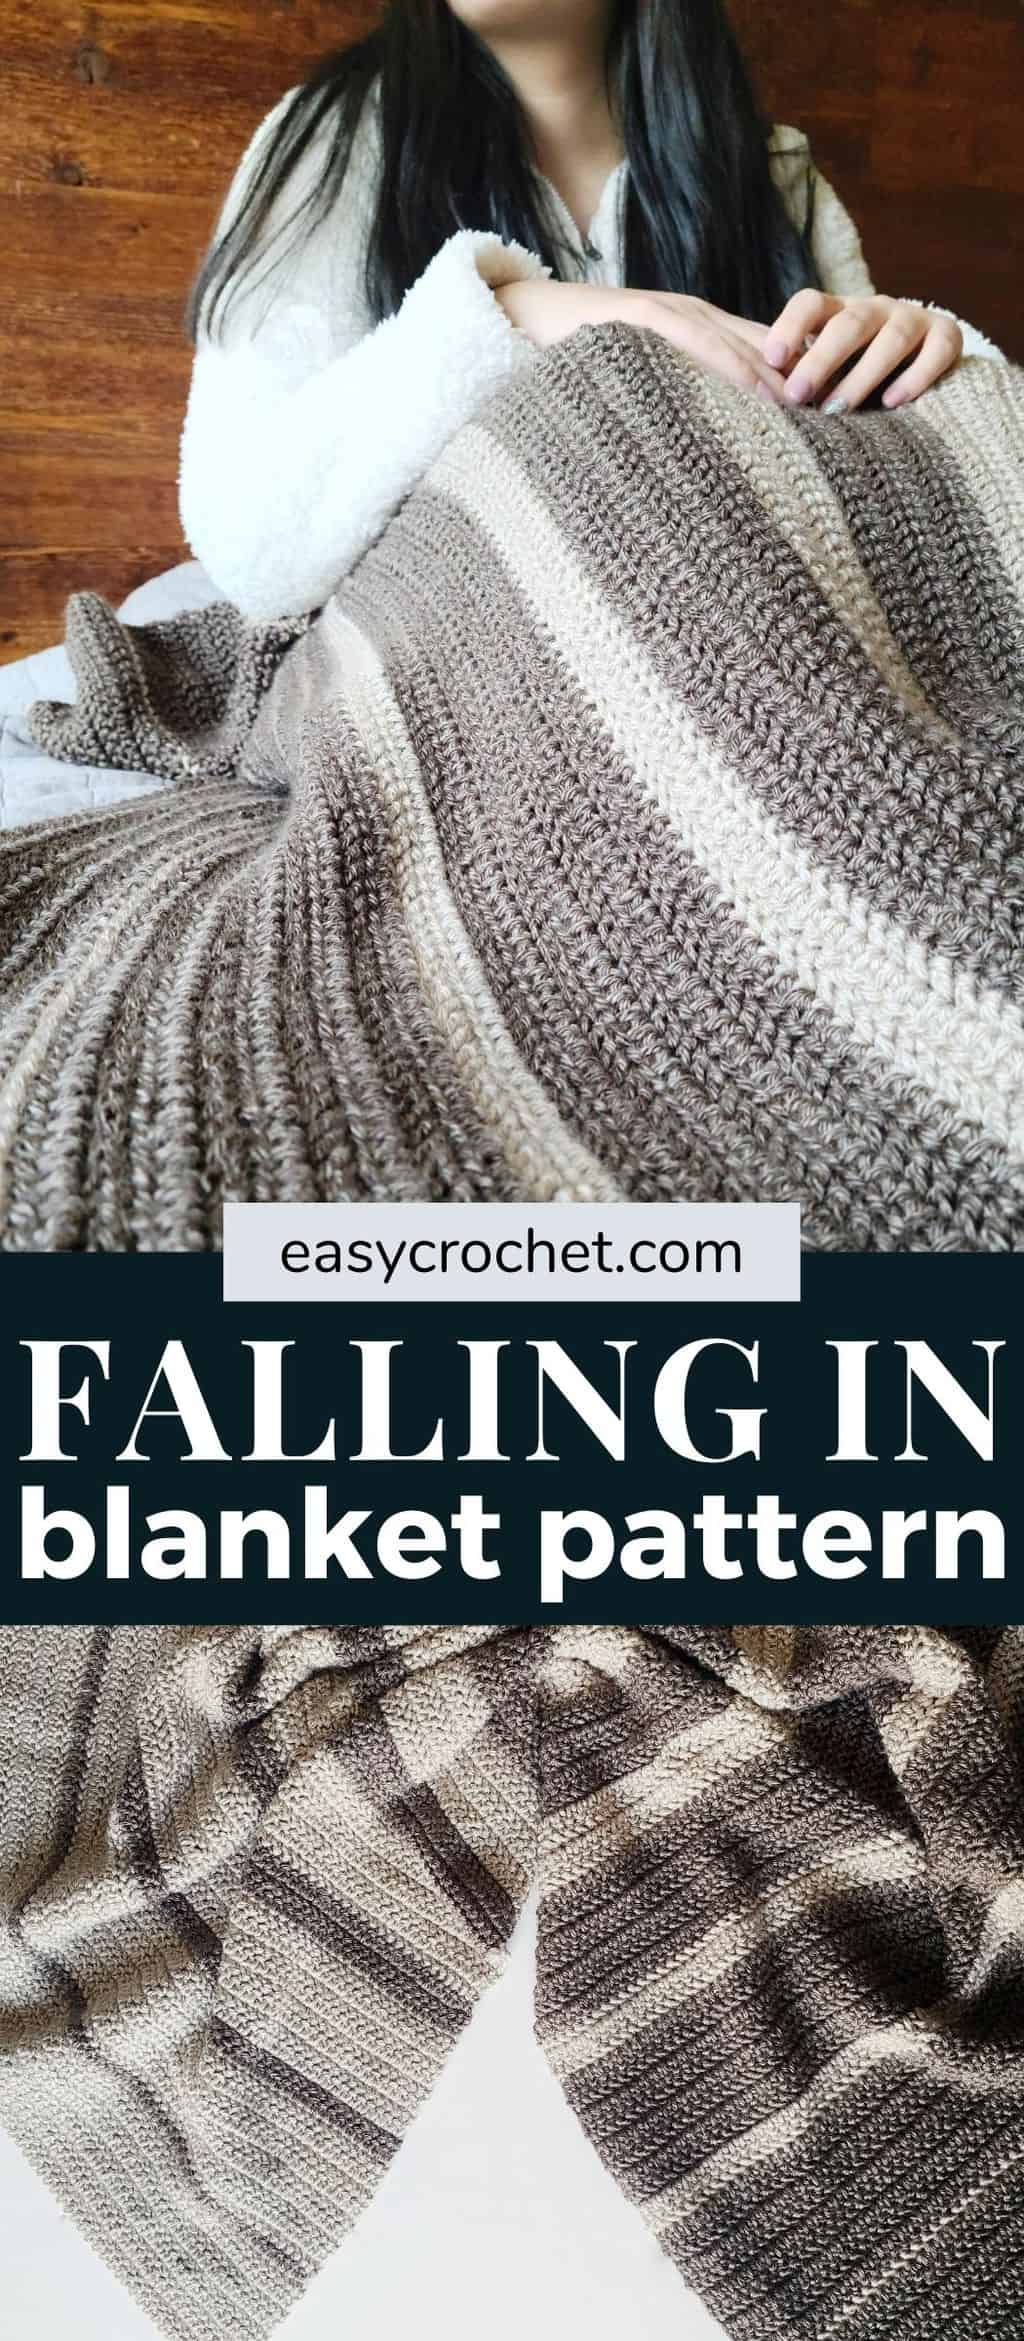 striped crochet blanket pattern via @easycrochetcom